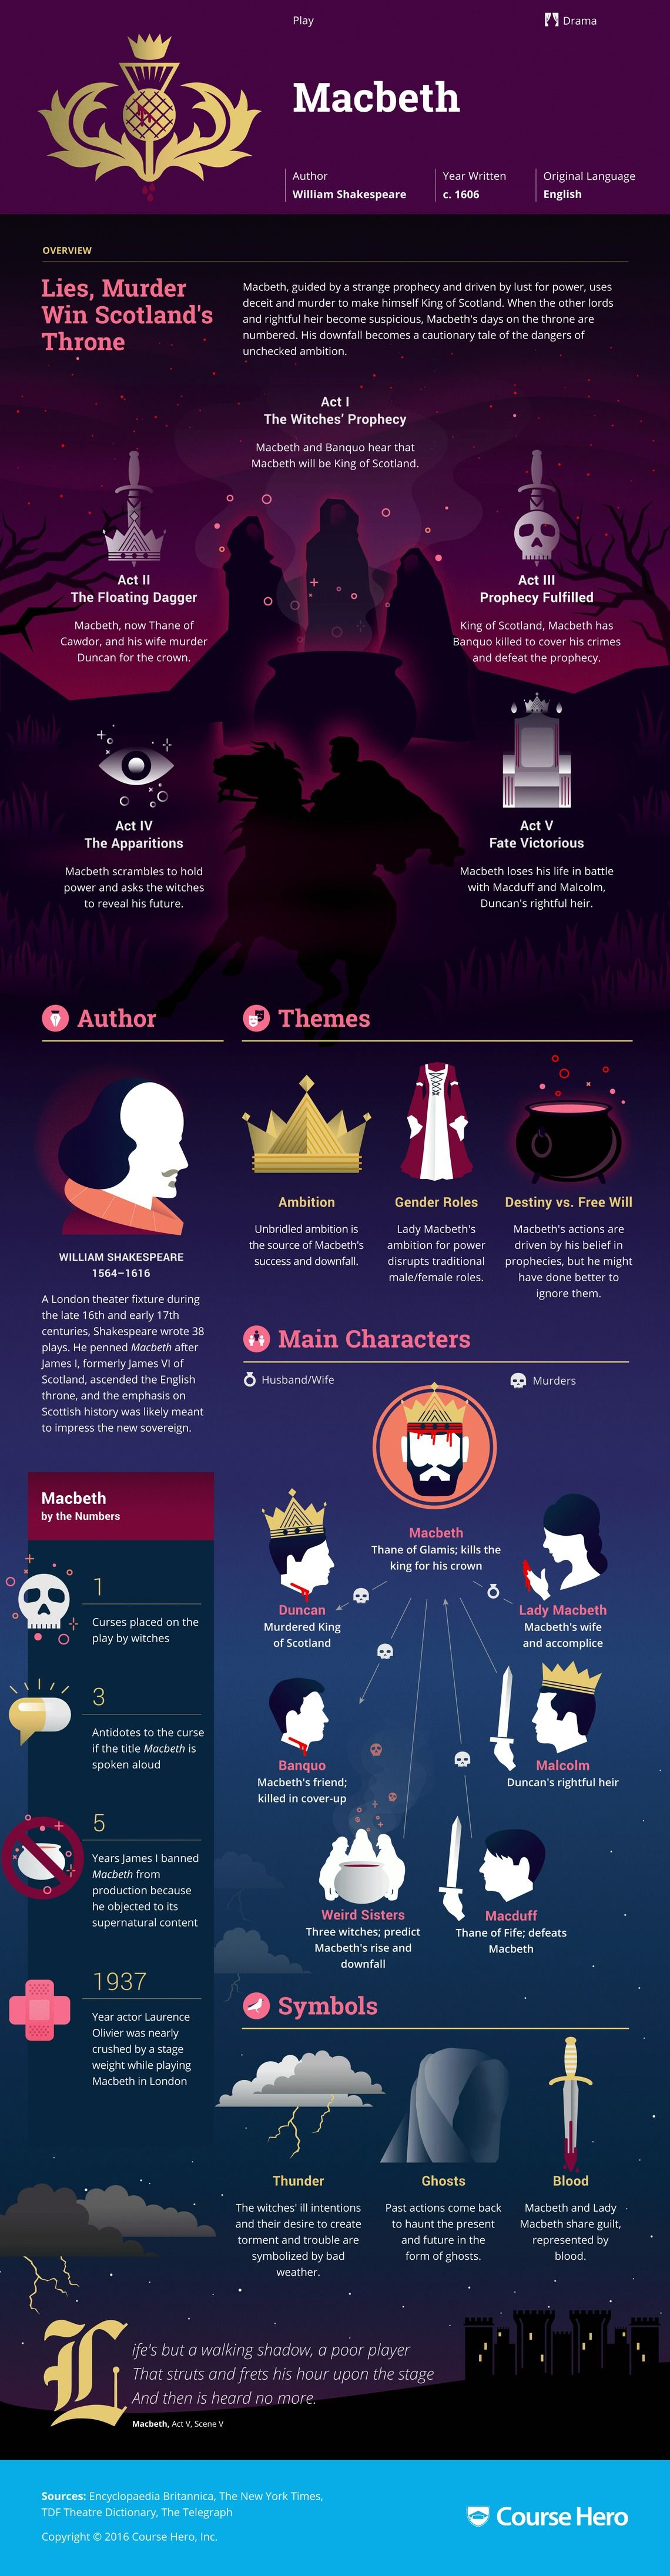 Macbeth Infographic